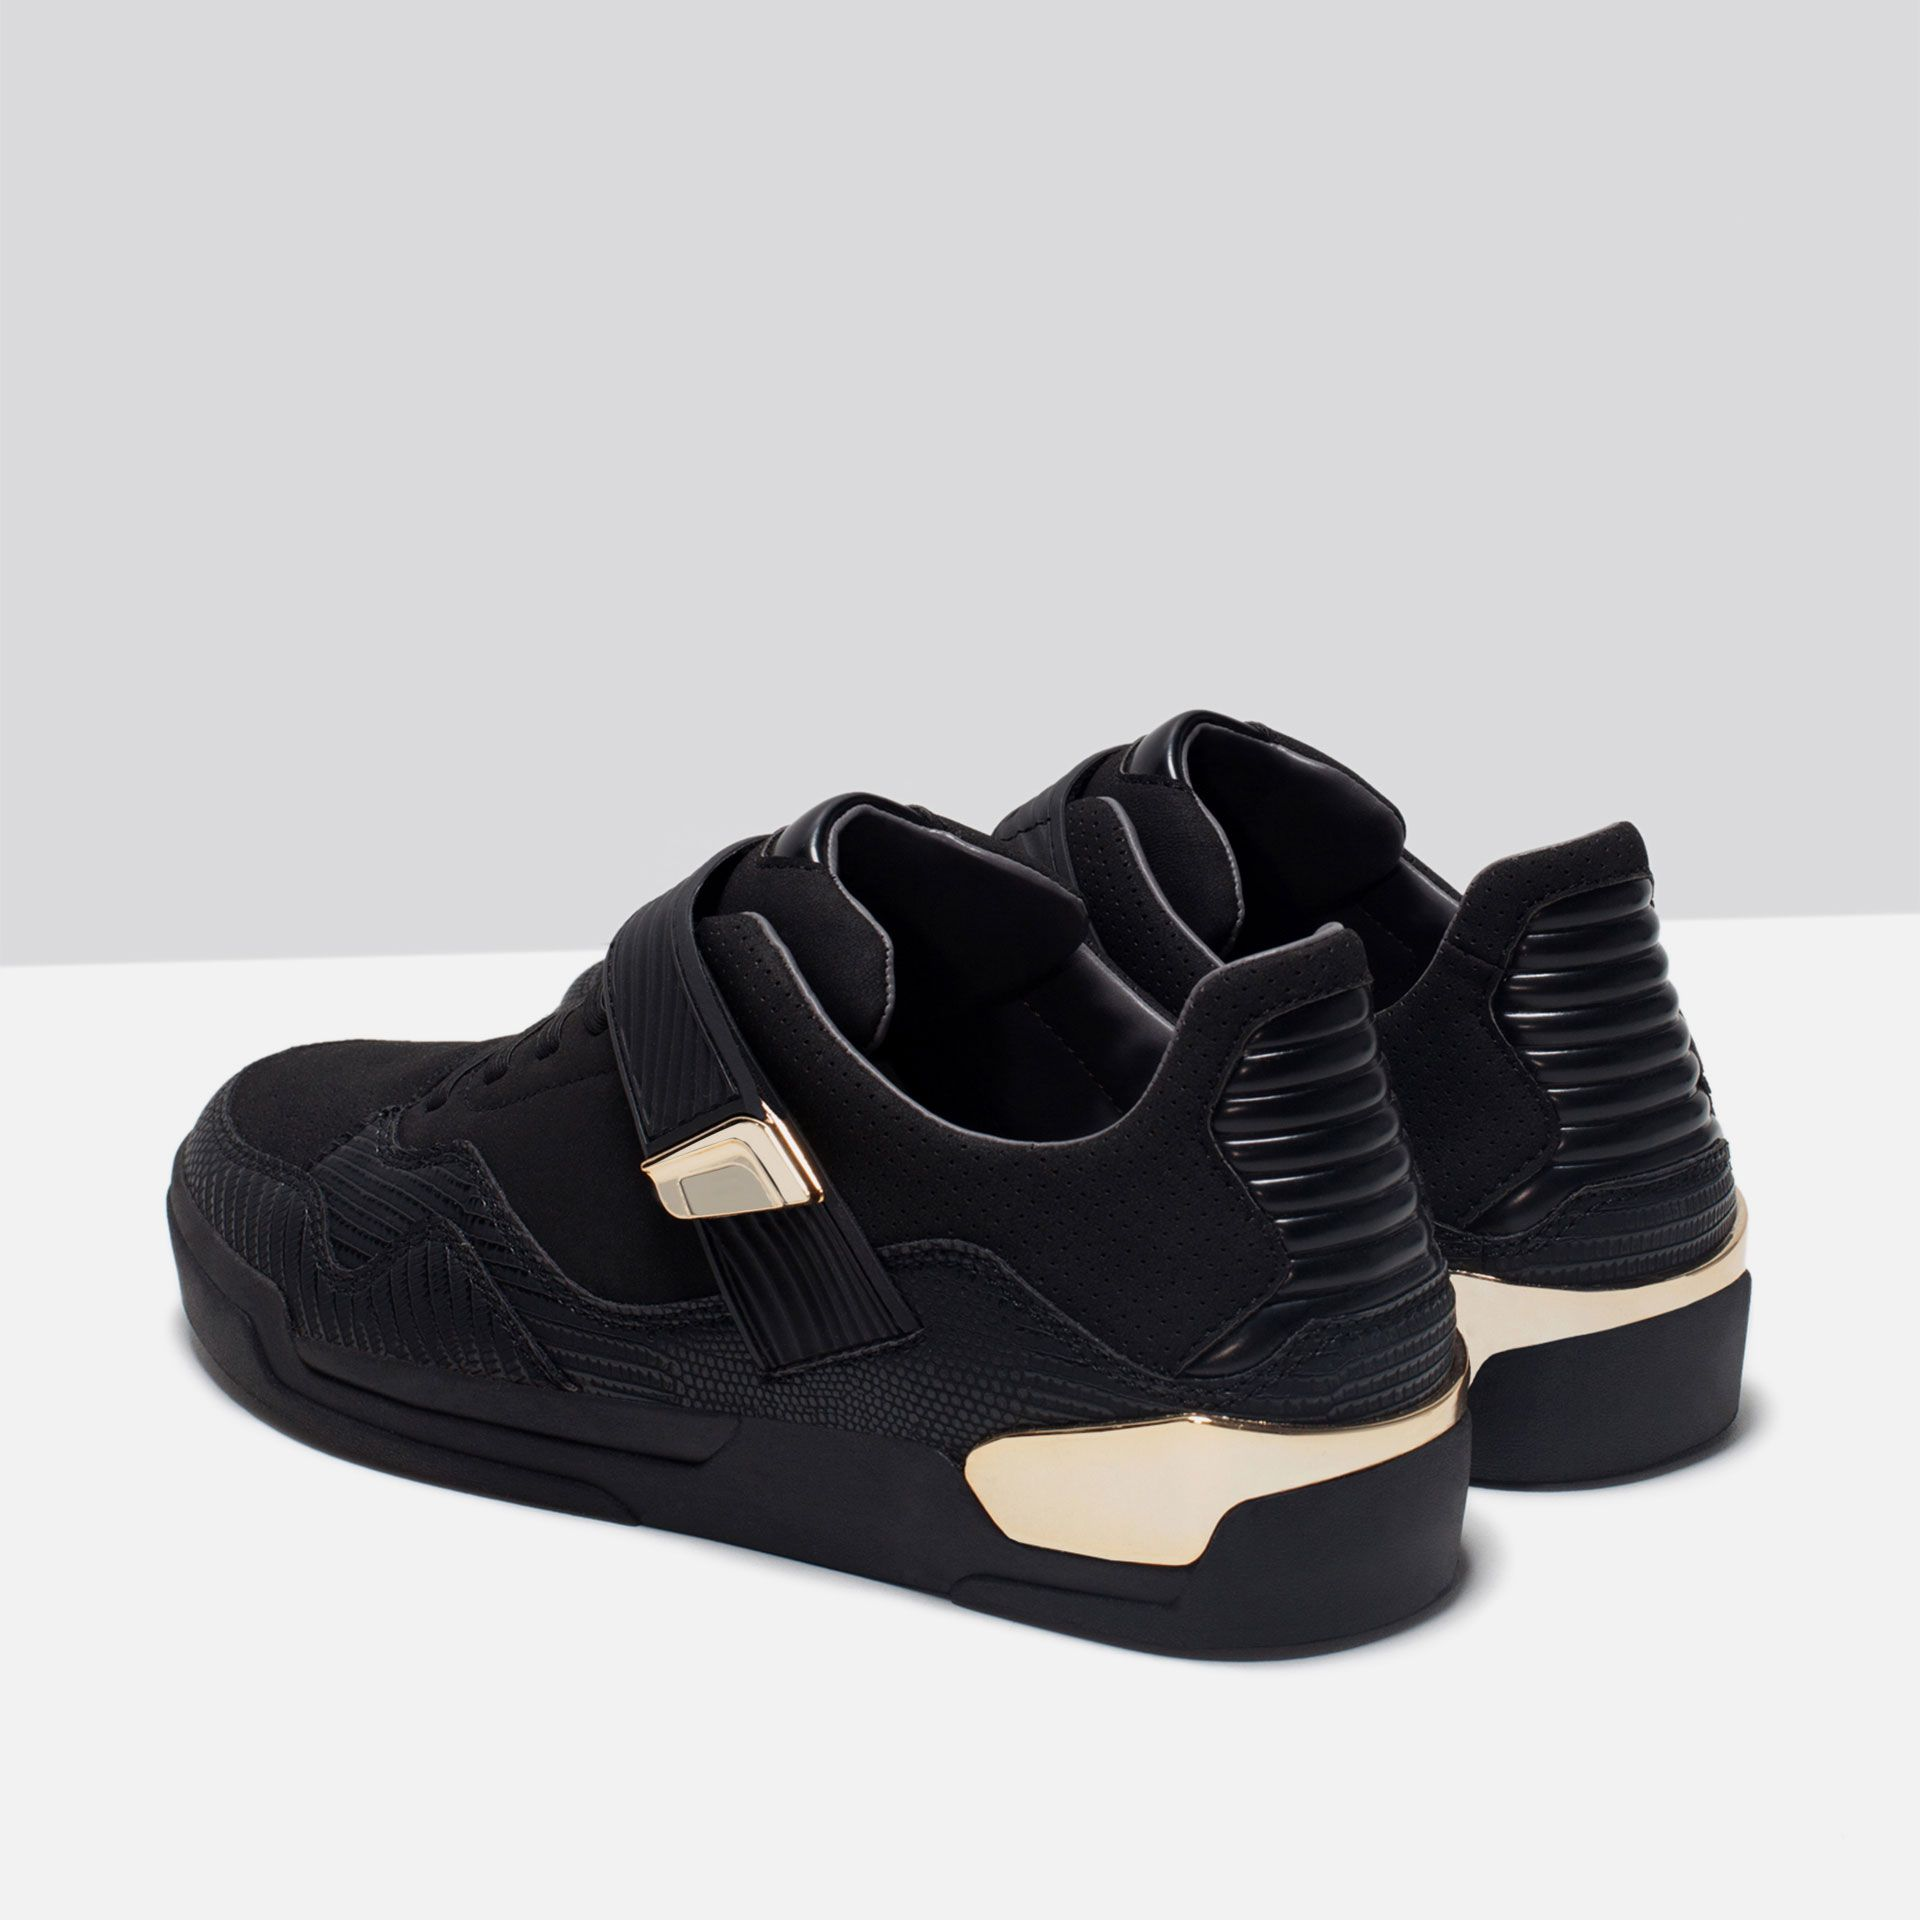 METALLIC DETAIL SNEAKERS - Sneakers - Shoes - MAN | ZARA Philippines